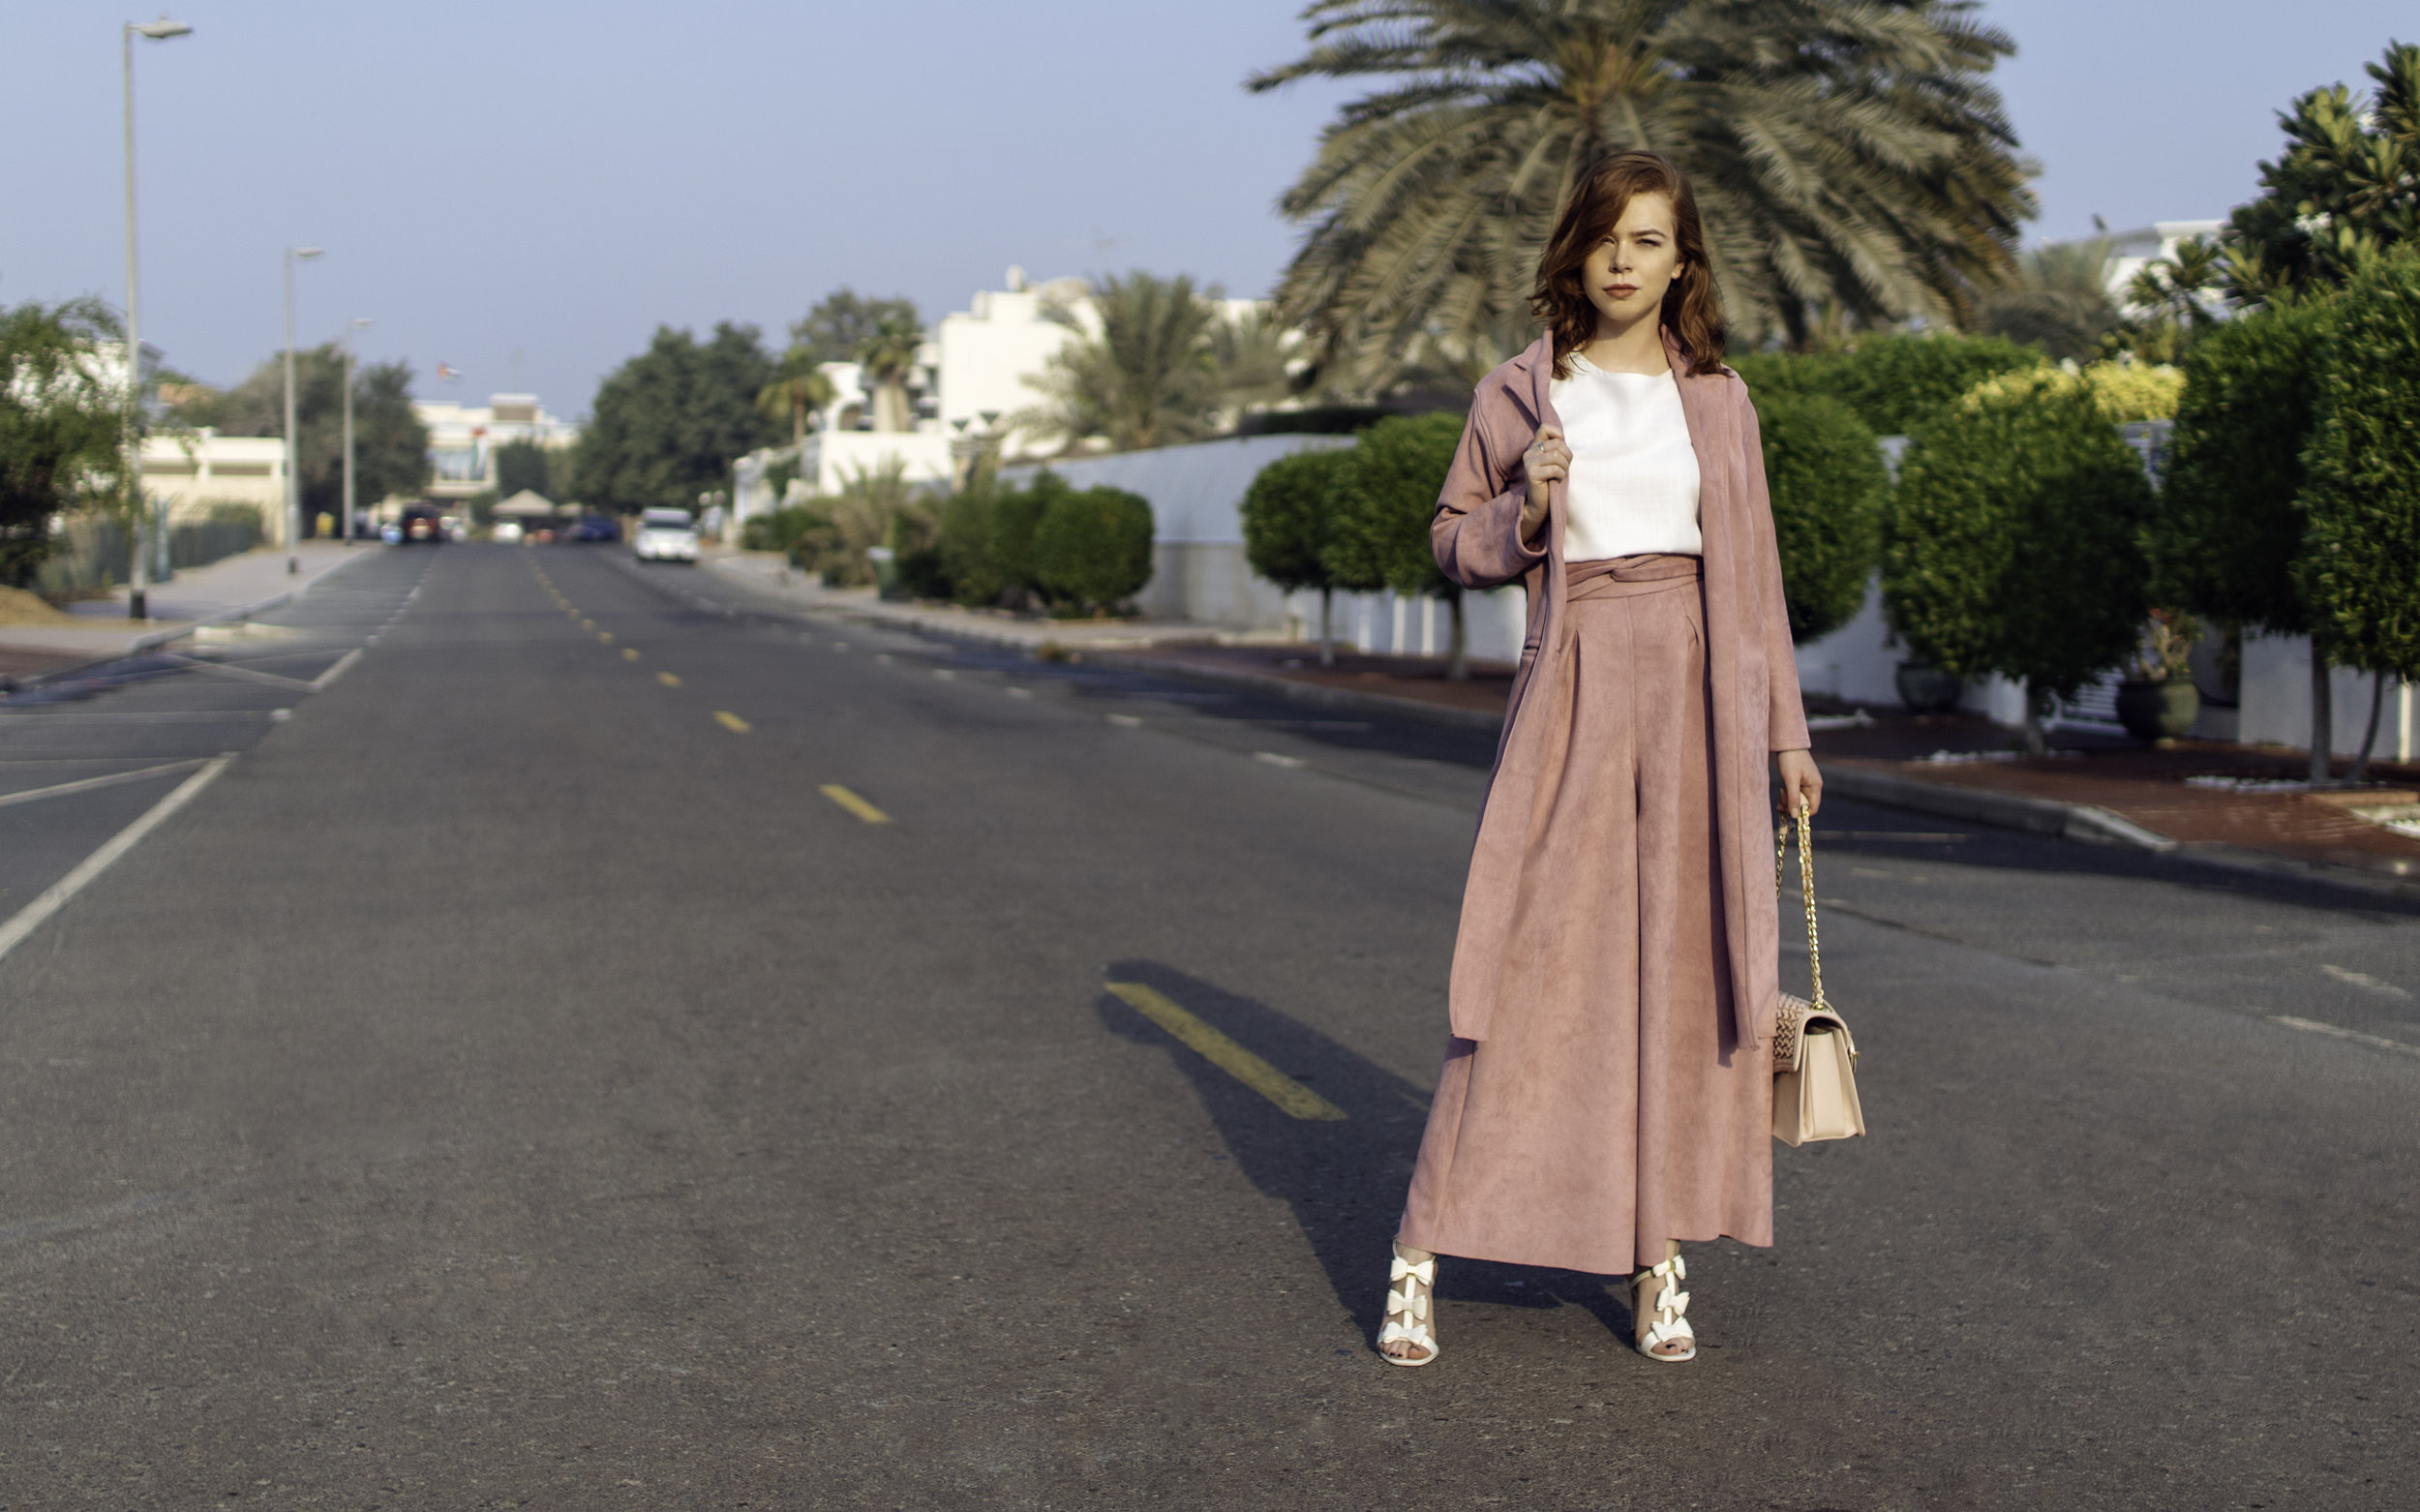 Photos taken in Jumeirah 2, Dubai. For today's chic office look I'm wearing an   incredible 3 piece, suede design by Yara Bin Shakar ,  Ted Baker flower heels and Valentino Orlandi handbag.